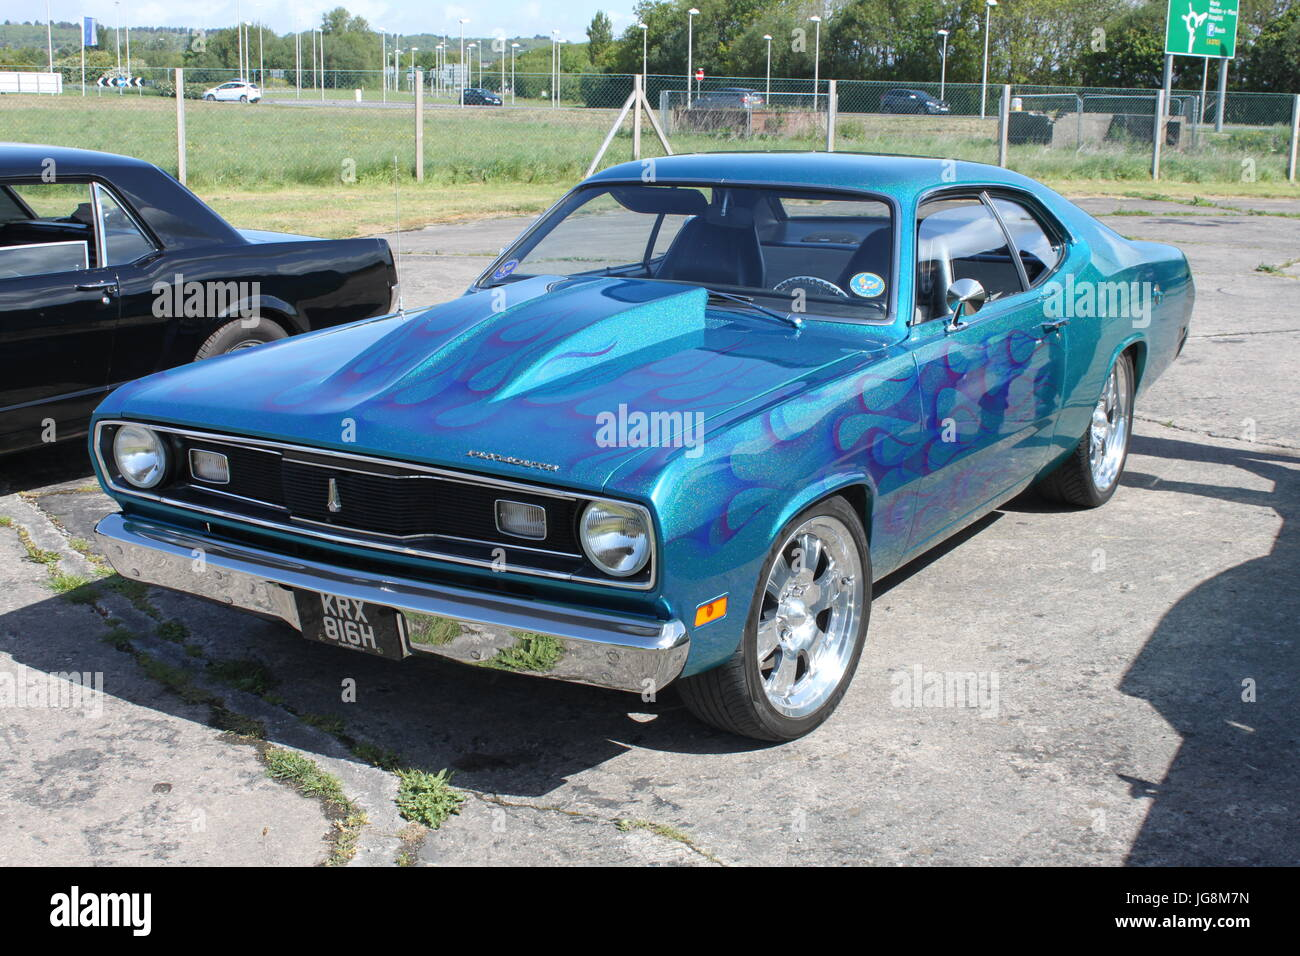 Plymouth Barracuda Stock Photos Images 1941 Pro Street 1969 Image